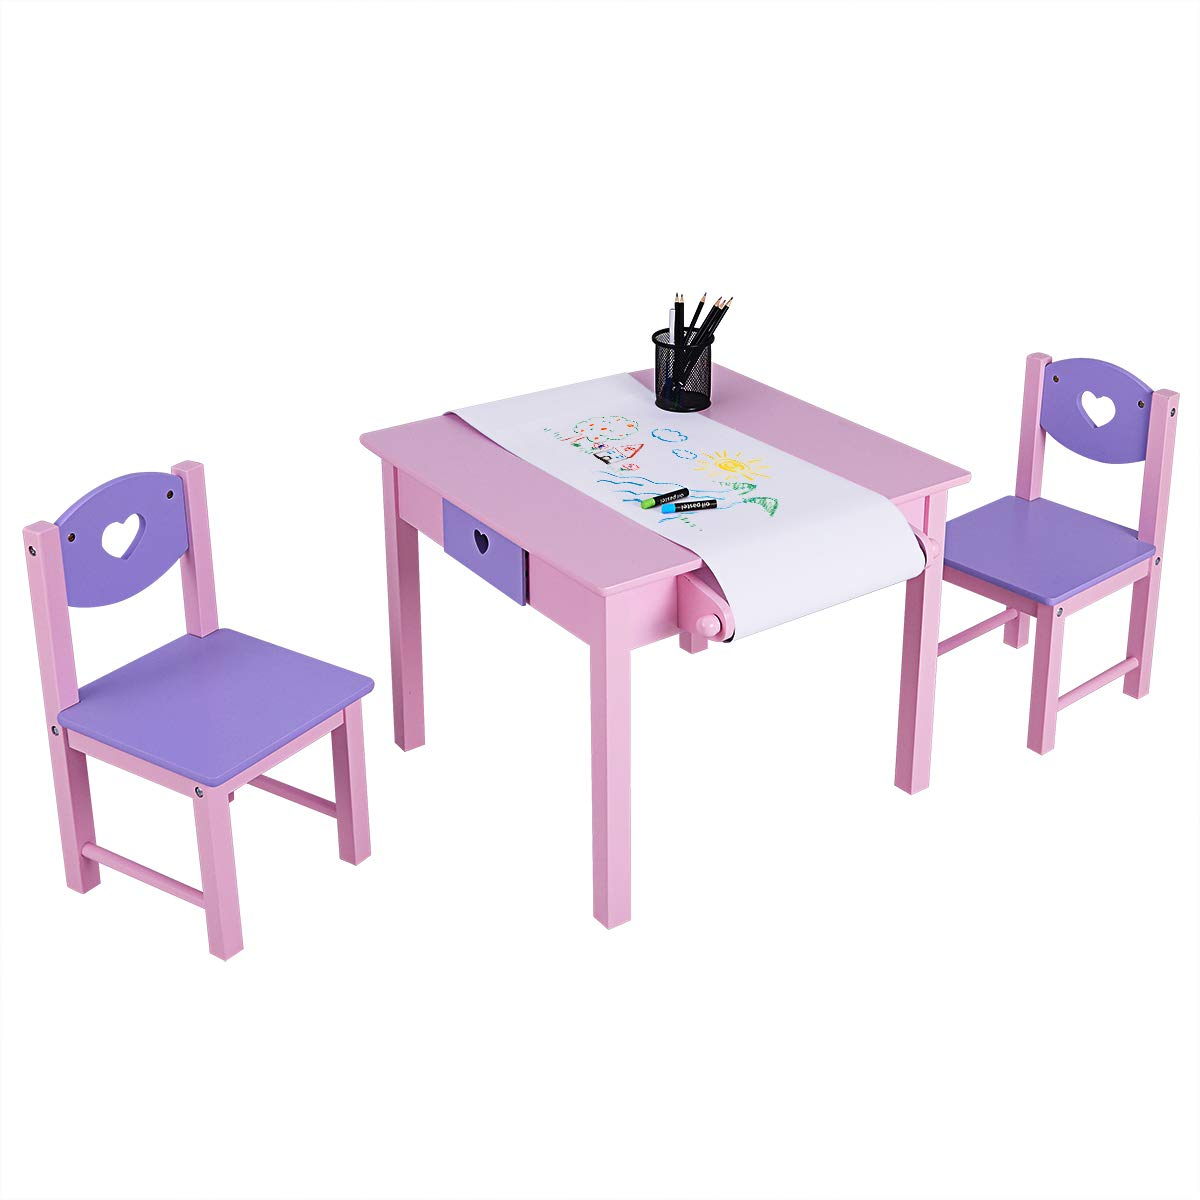 Baby Joy Kids Wood Table and 2 Chair Set, 3 in 1 Children Art Table with Paper Roll Rack and Storage for Toddlers Drawing, Reading, Dining, Art Playroom, 3 Piece Kiddy Painting Desk Chair Set